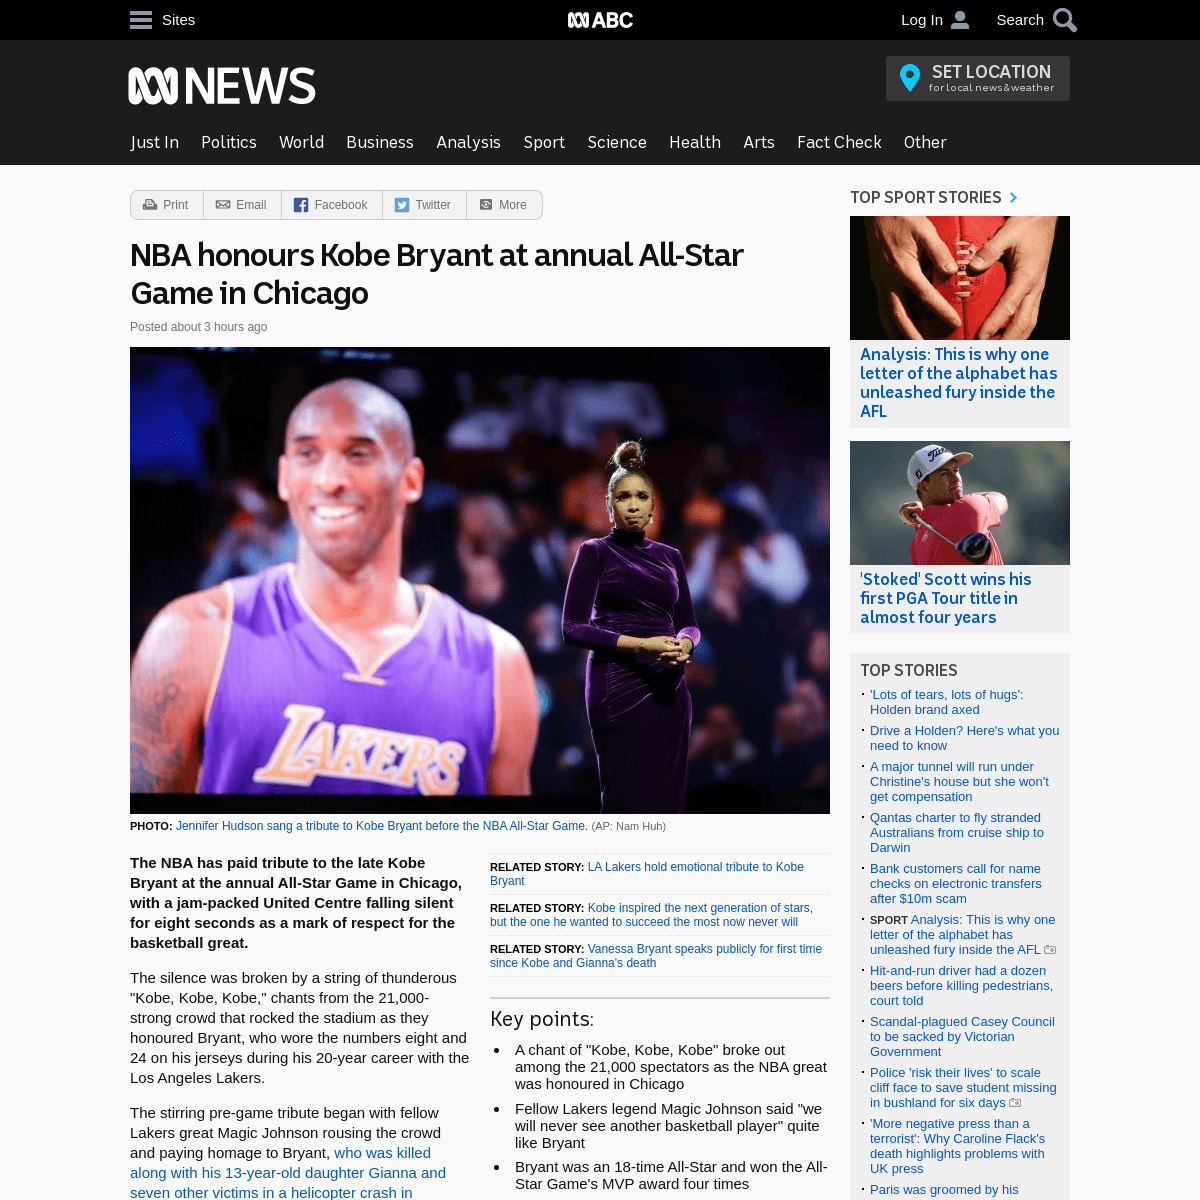 NBA honours Kobe Bryant at annual All-Star Game in Chicago - ABC News (Australian Broadcasting Corporation)